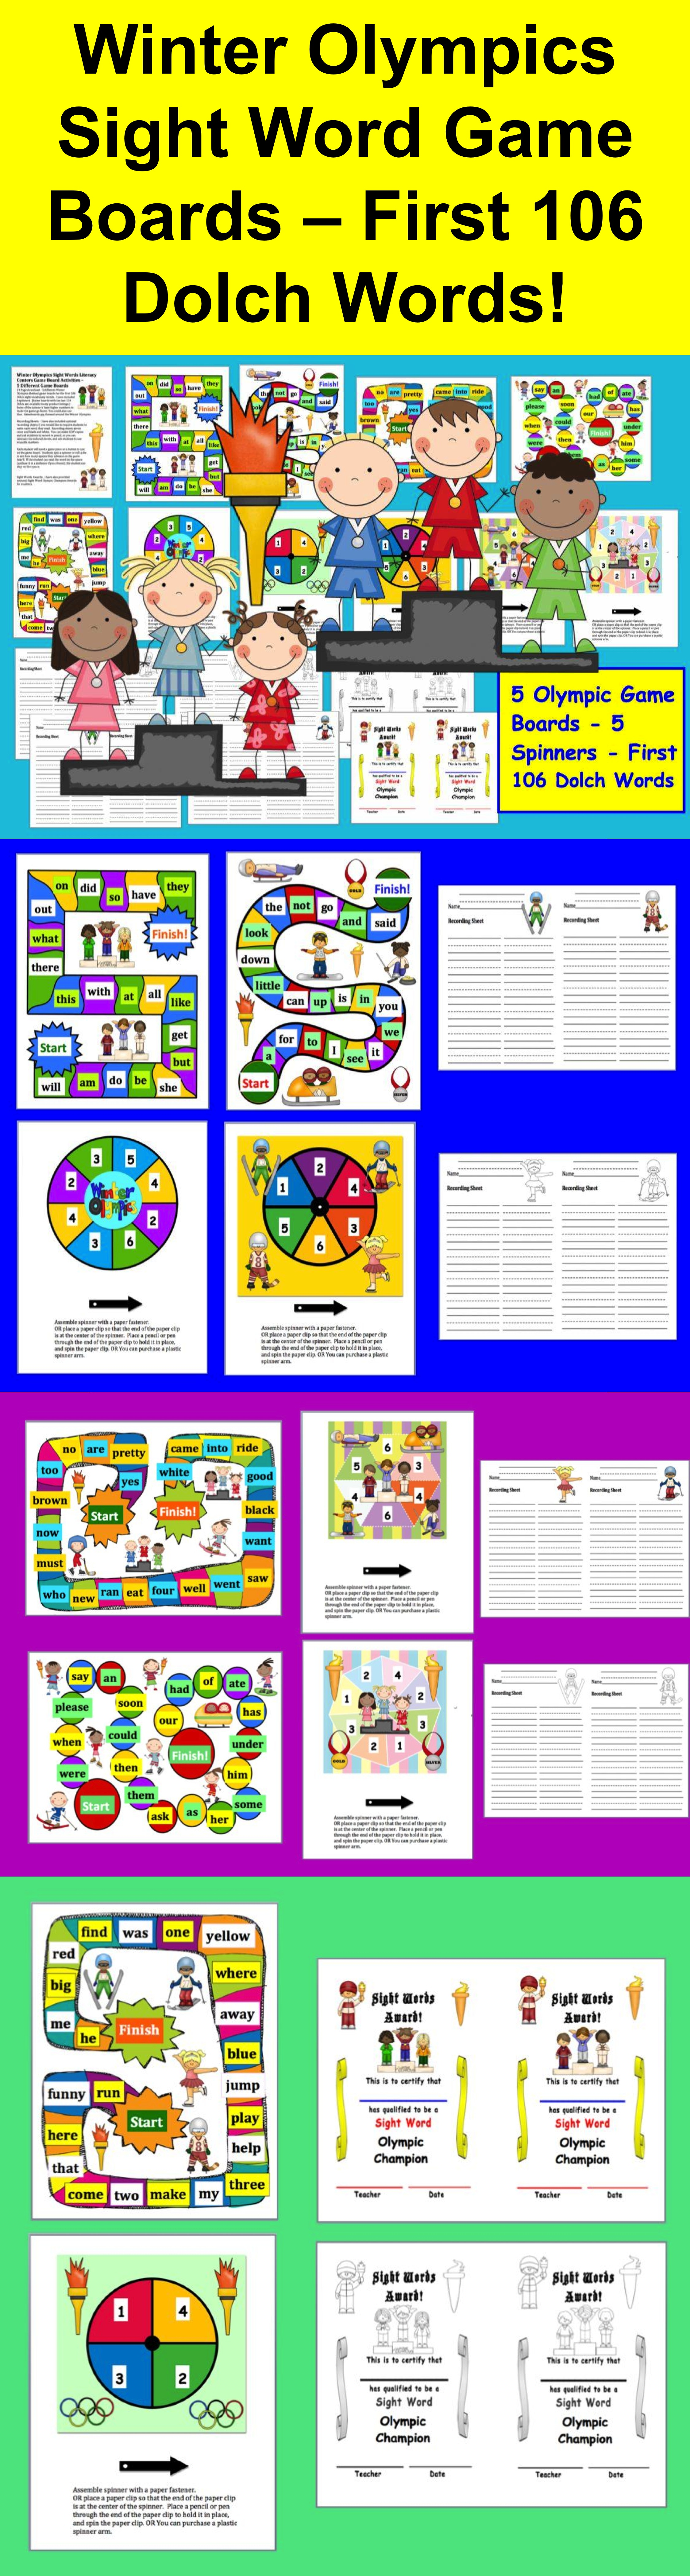 Winter Games Olympic Sight Words Game Boards